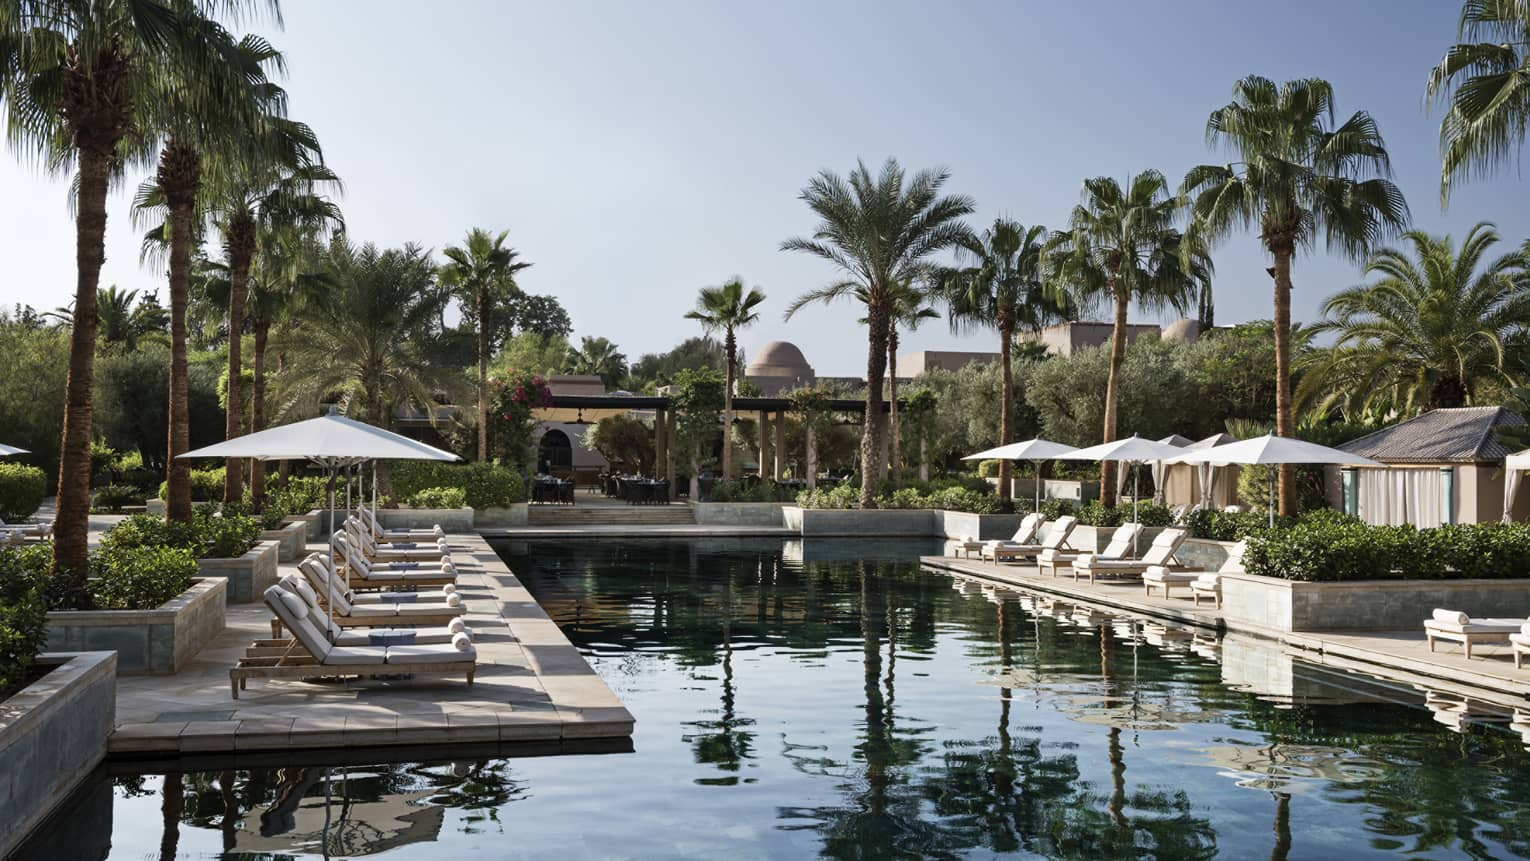 Tall palm trees over outdoor swimming pool and patio with rows of lounge chairs, umbrellas